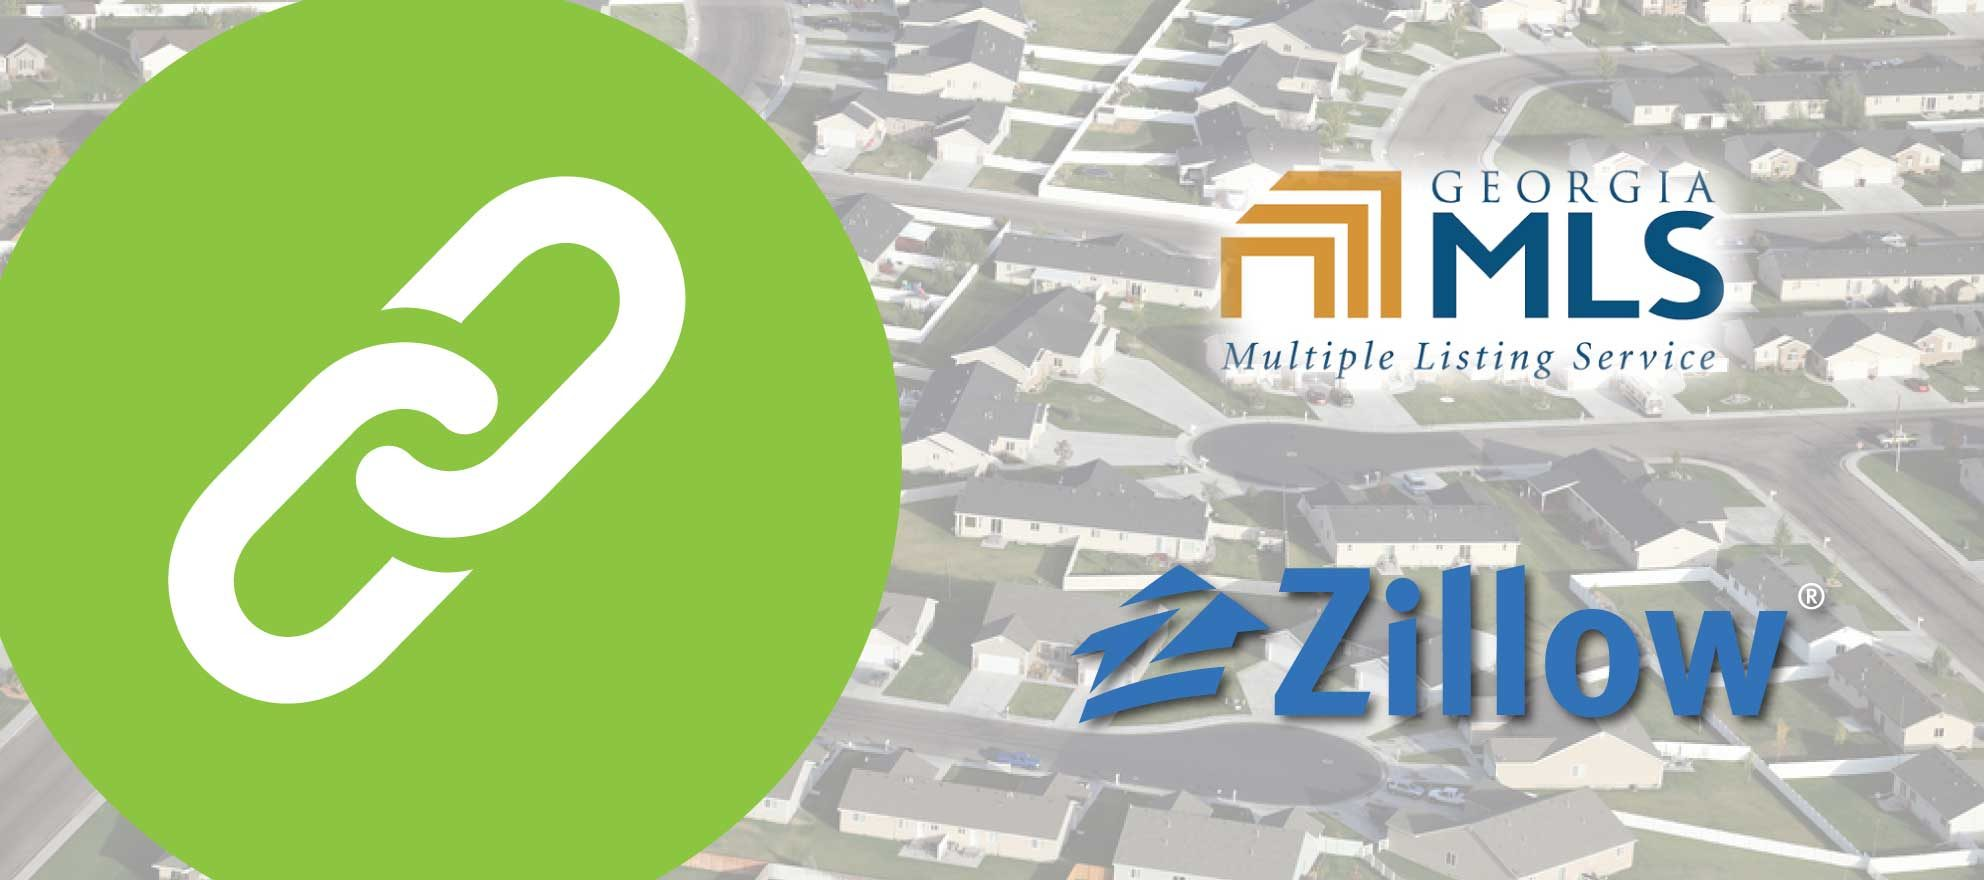 Zillow secures direct feed from big Georgia MLS